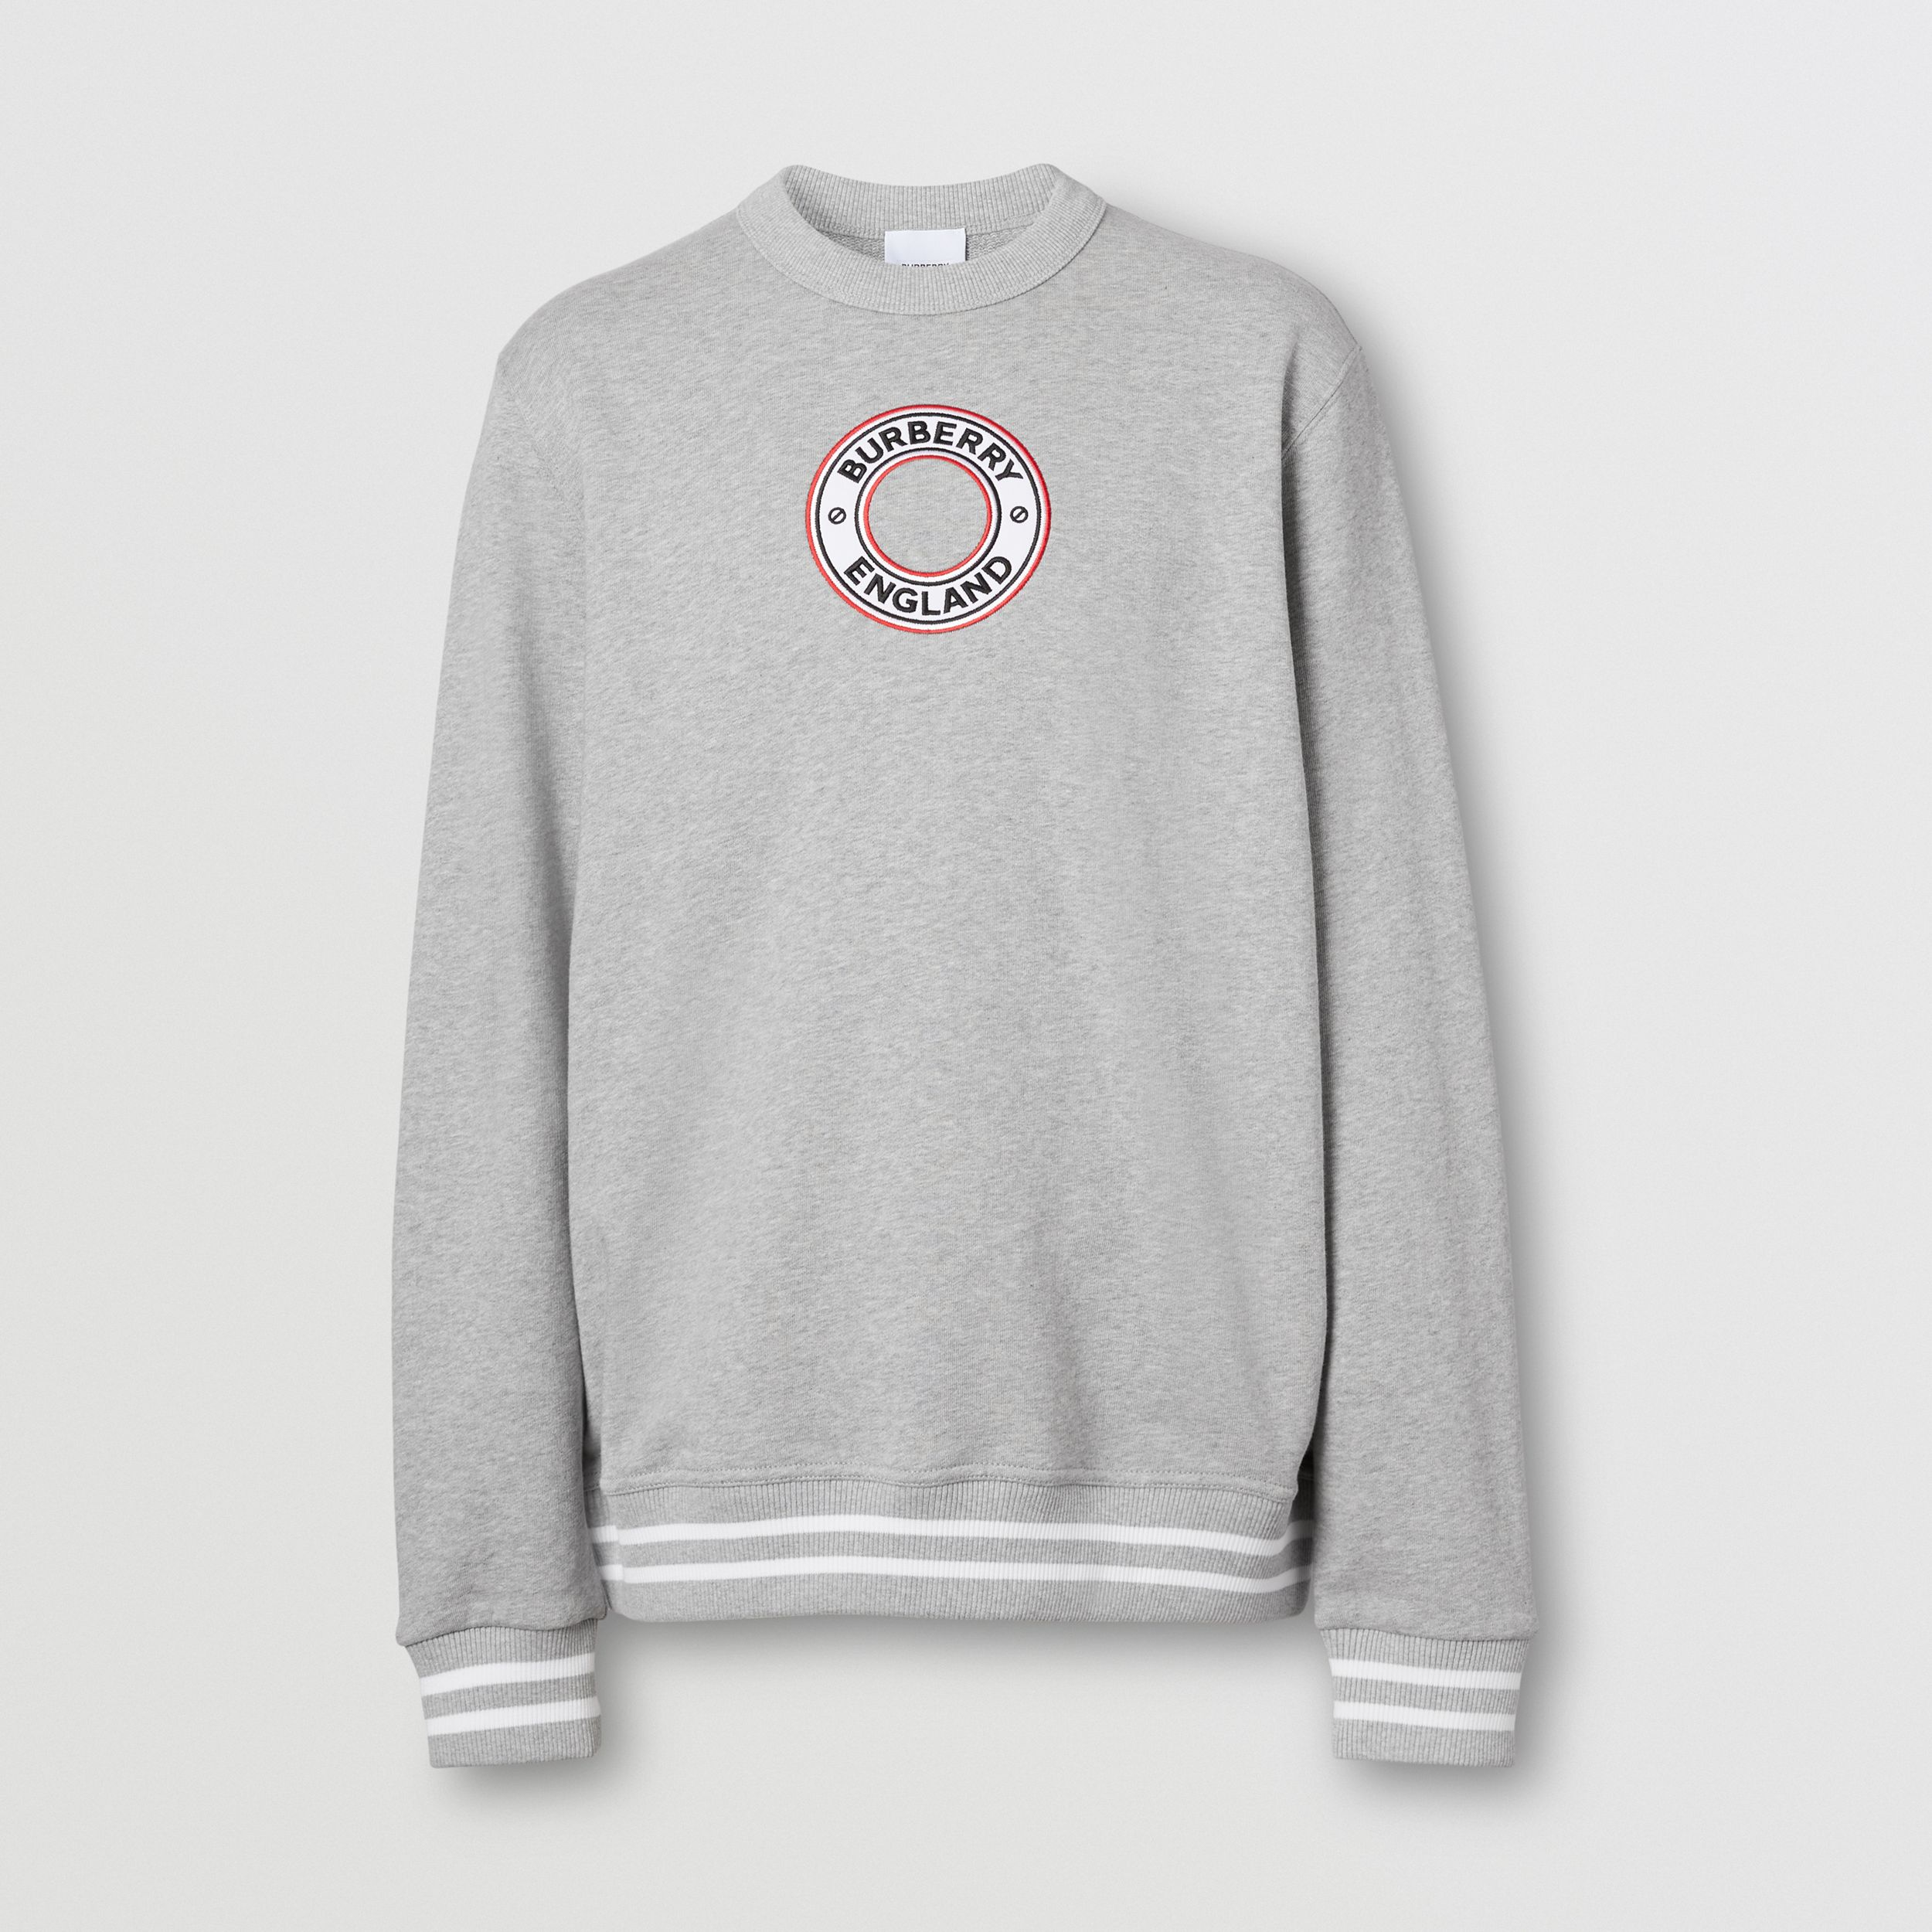 Logo Graphic Appliqué Cotton Sweatshirt in Pale Grey Melange - Men | Burberry Hong Kong S.A.R. - 4